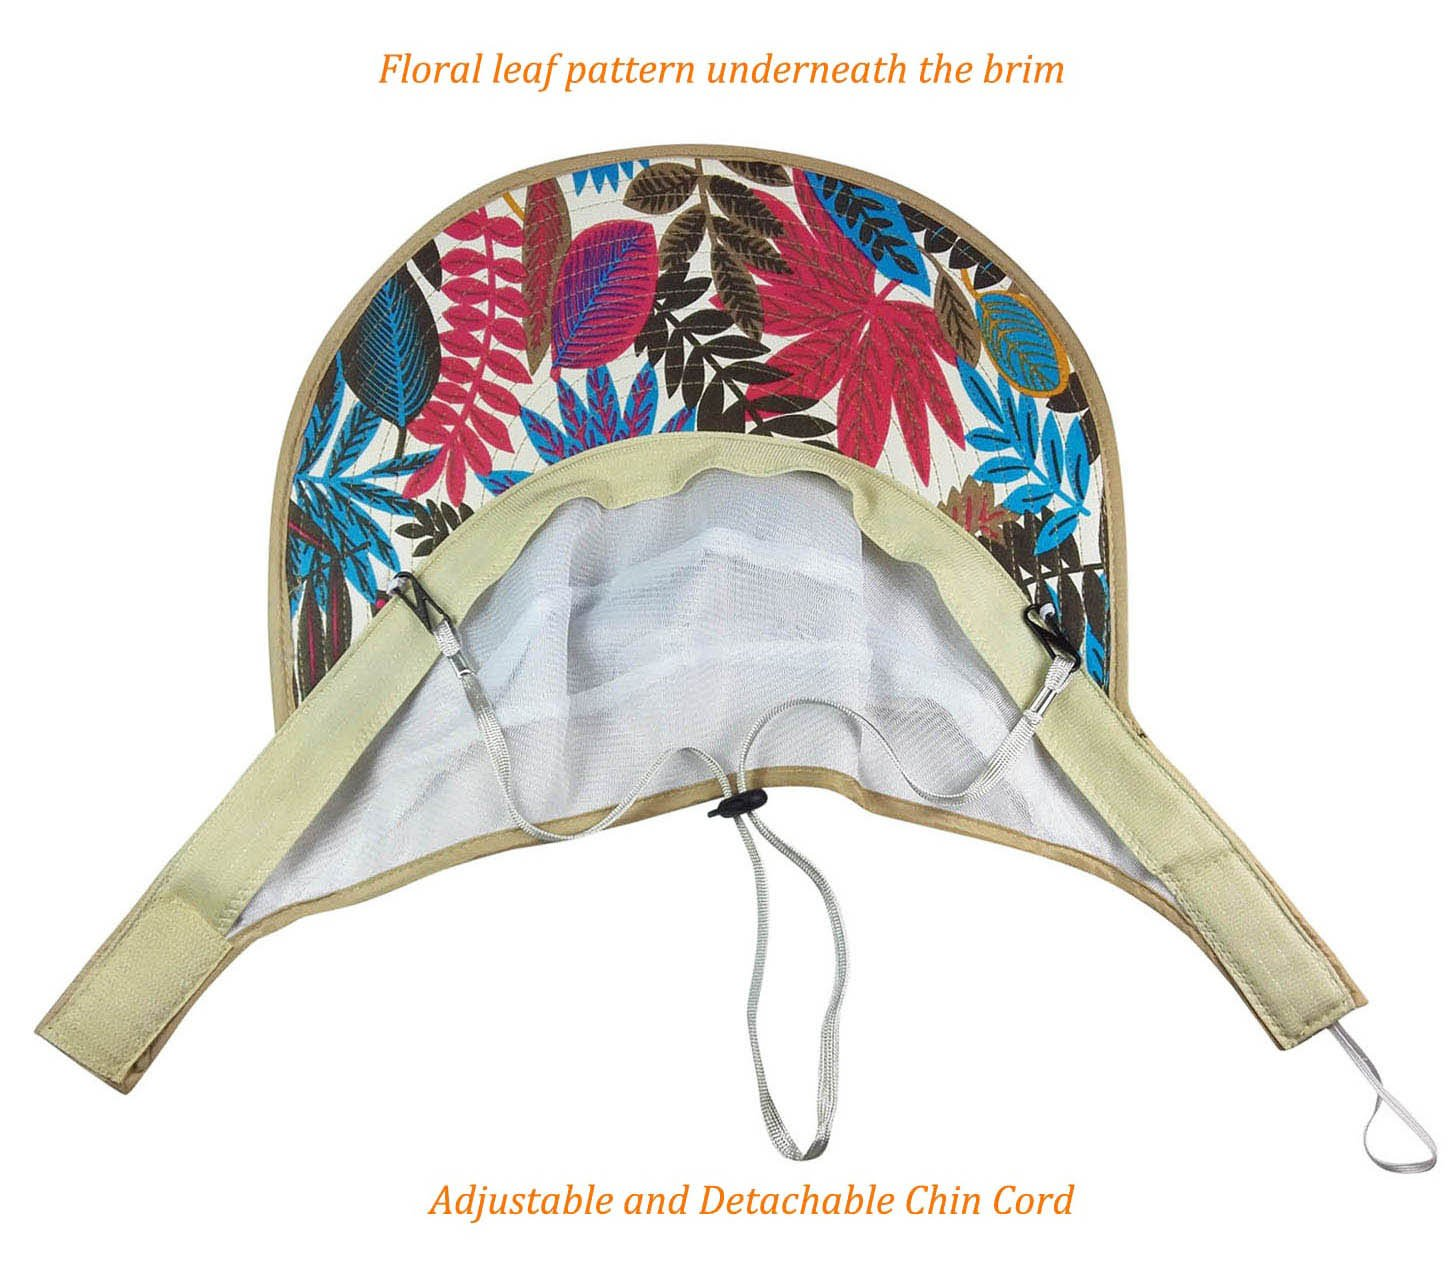 HindaWi Sun Hats for Women Wide Brim UV Protection Visor Floppy Hat Beach Summer Packable Caps by HindaWi (Image #4)